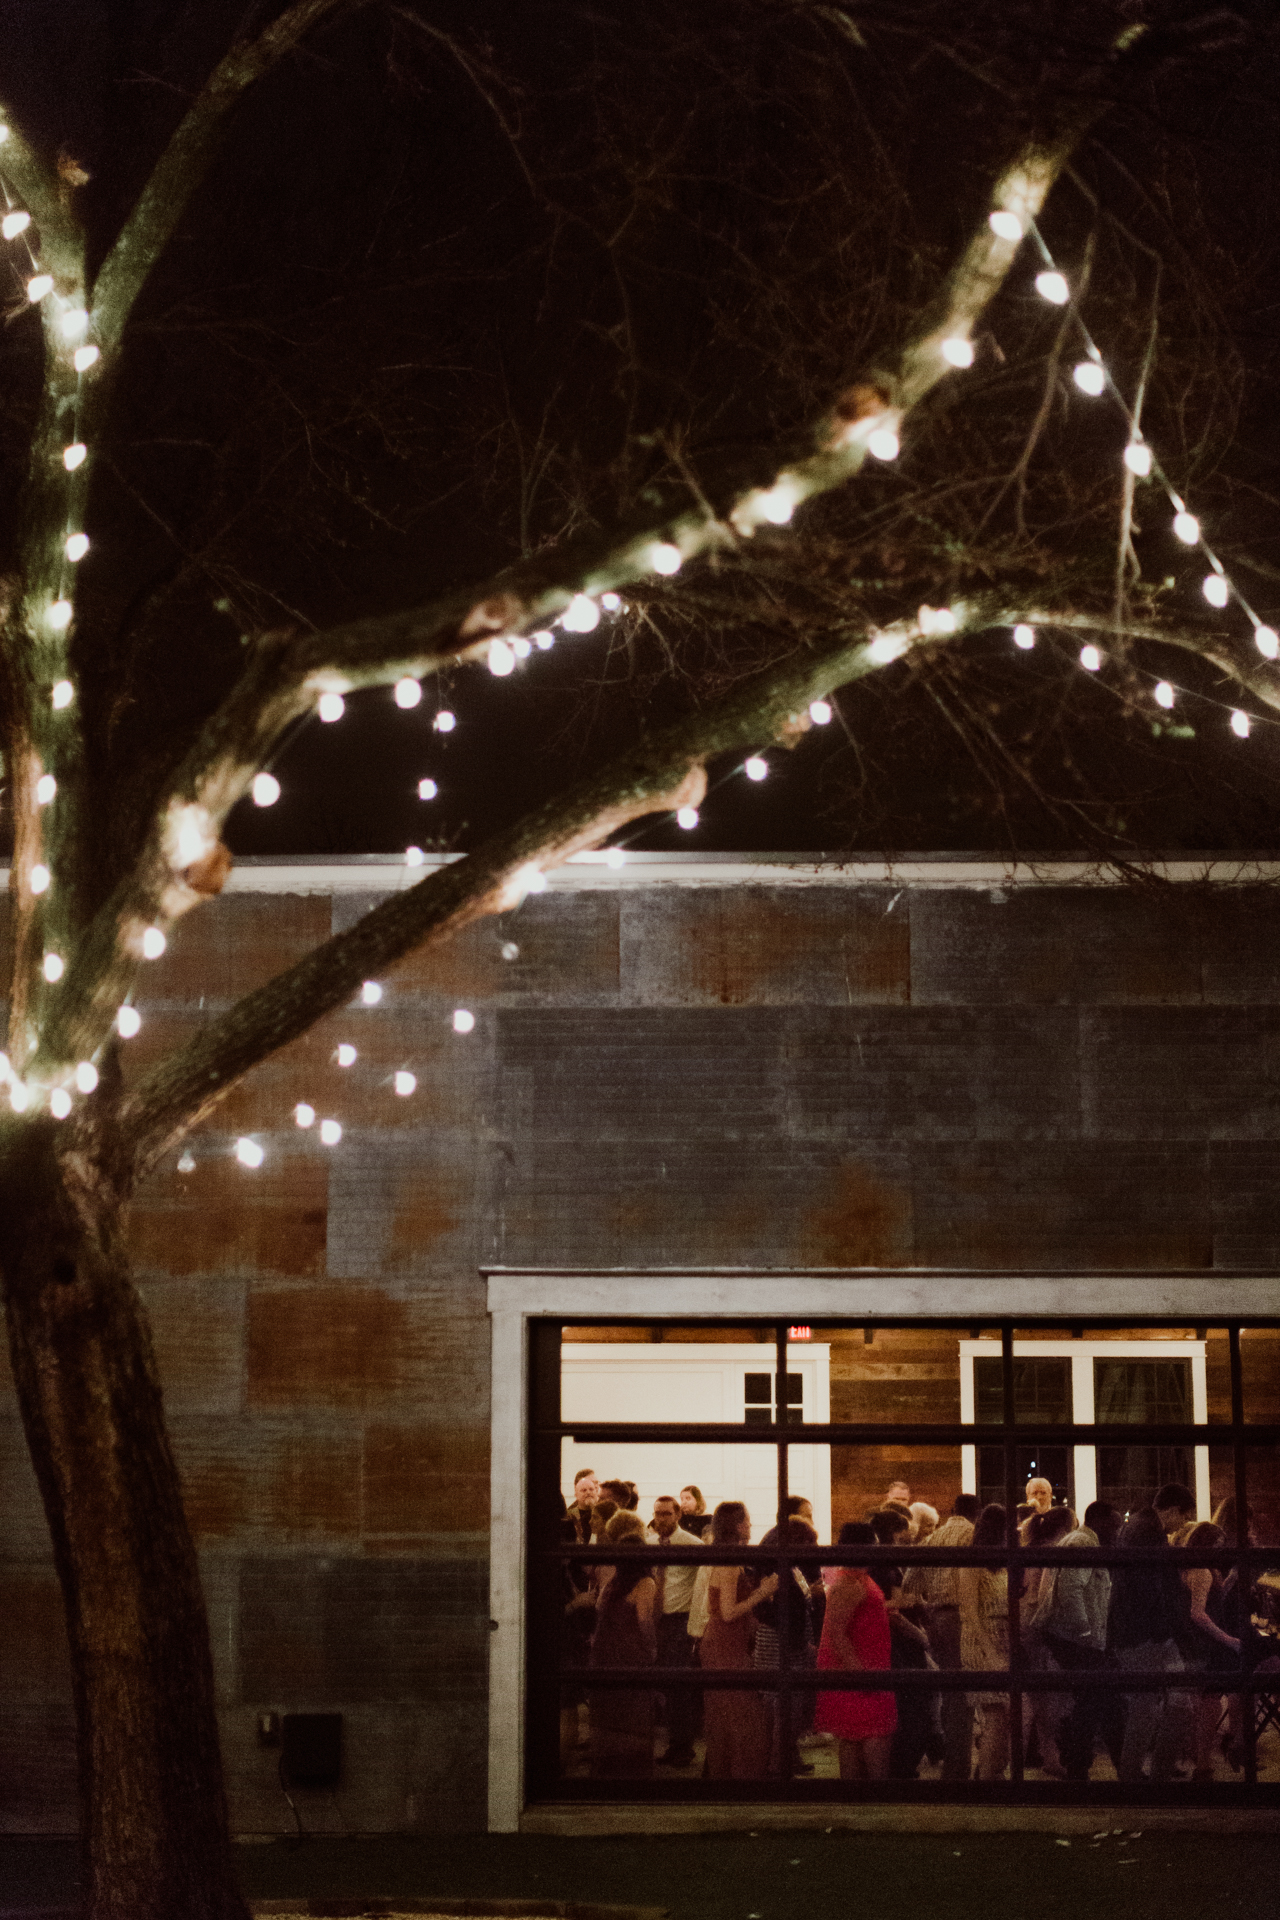 austin_texas_industrial_garden_wedding-72.jpg